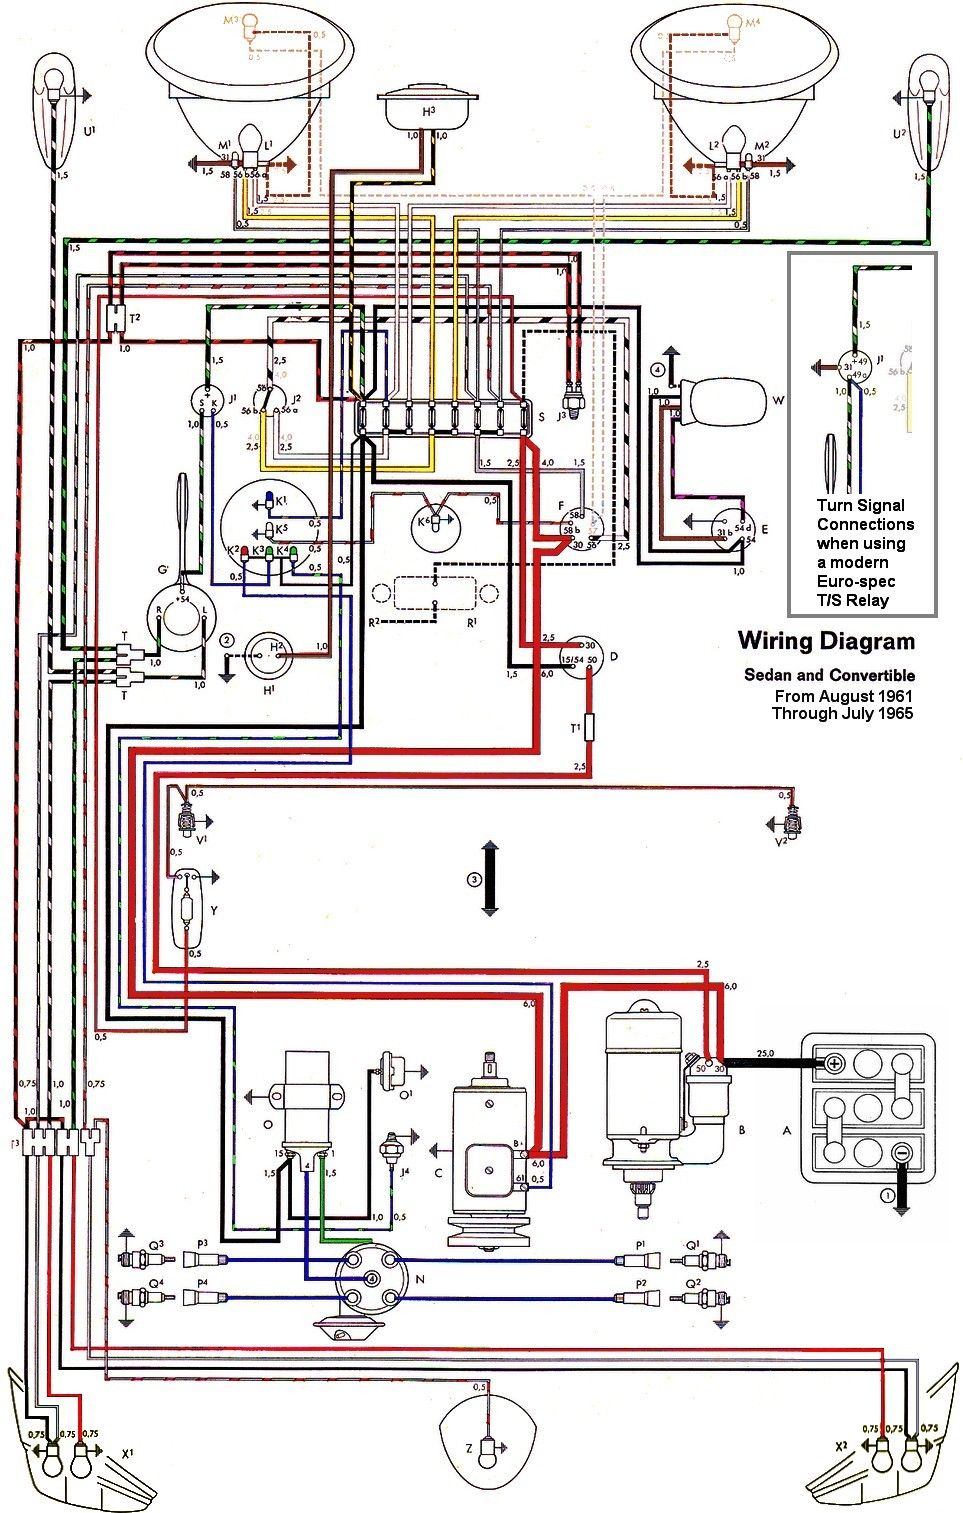 wiring diagram vw beetle sedan and convertible 1961 1965 vw wiring diagram vw beetle sedan and convertible 1961 1965 vw vw beetles beetle and sedans